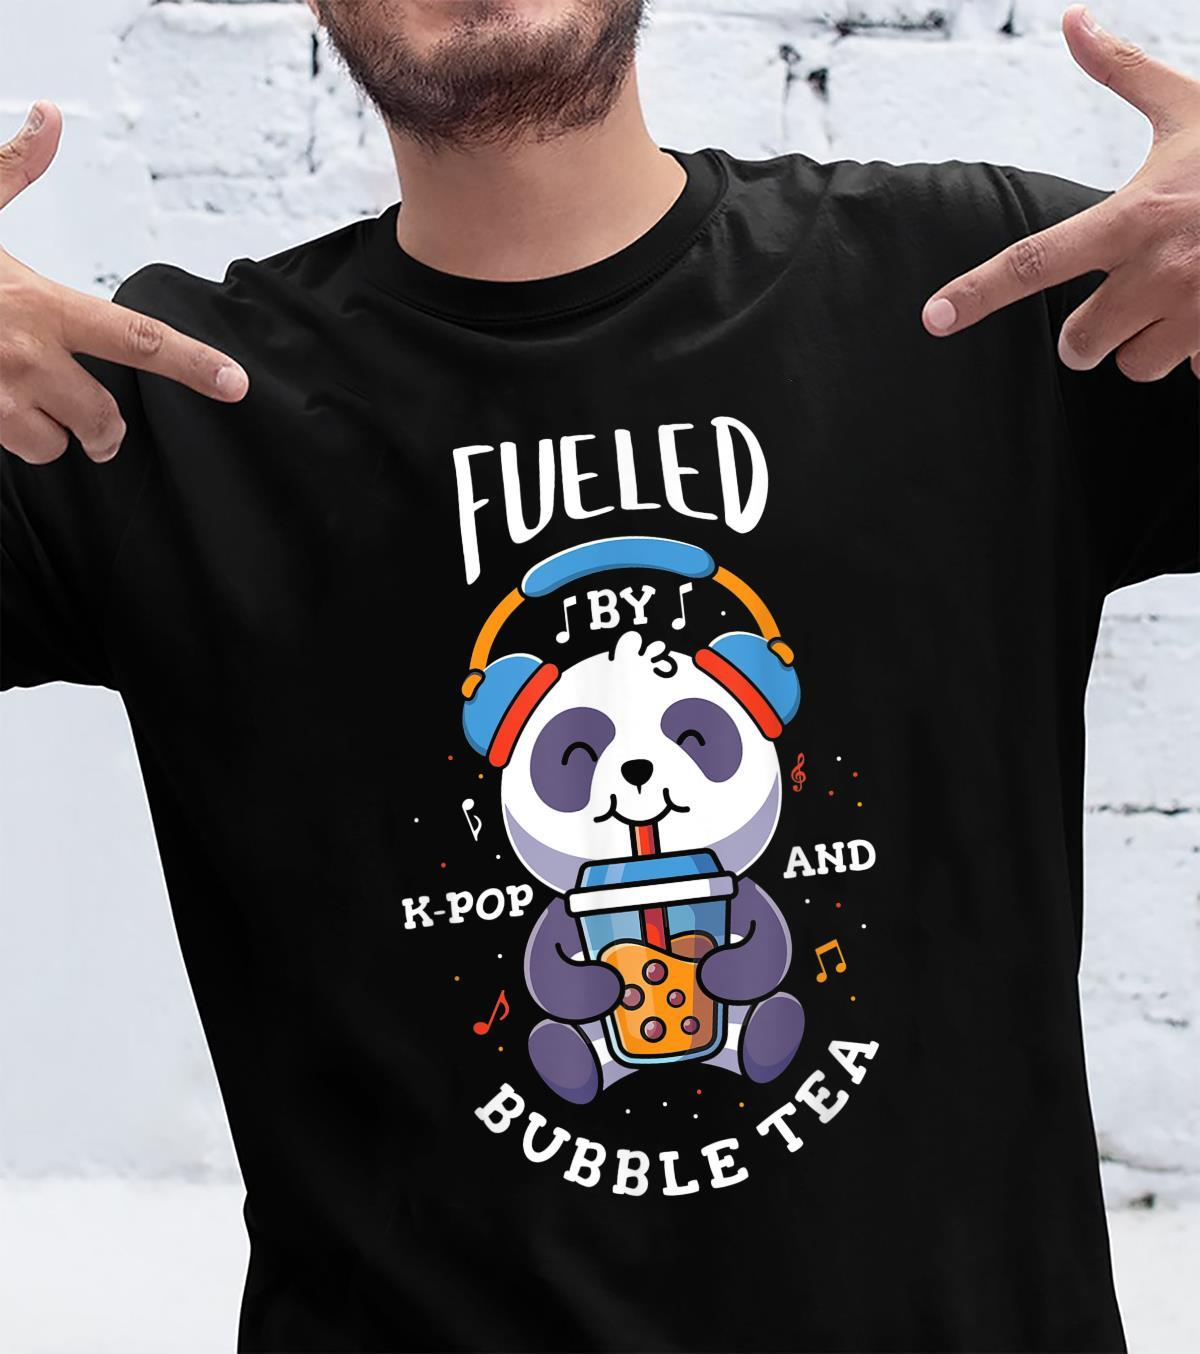 Fueled by kpop and bubble tea Design for a KPop Fan Shirt